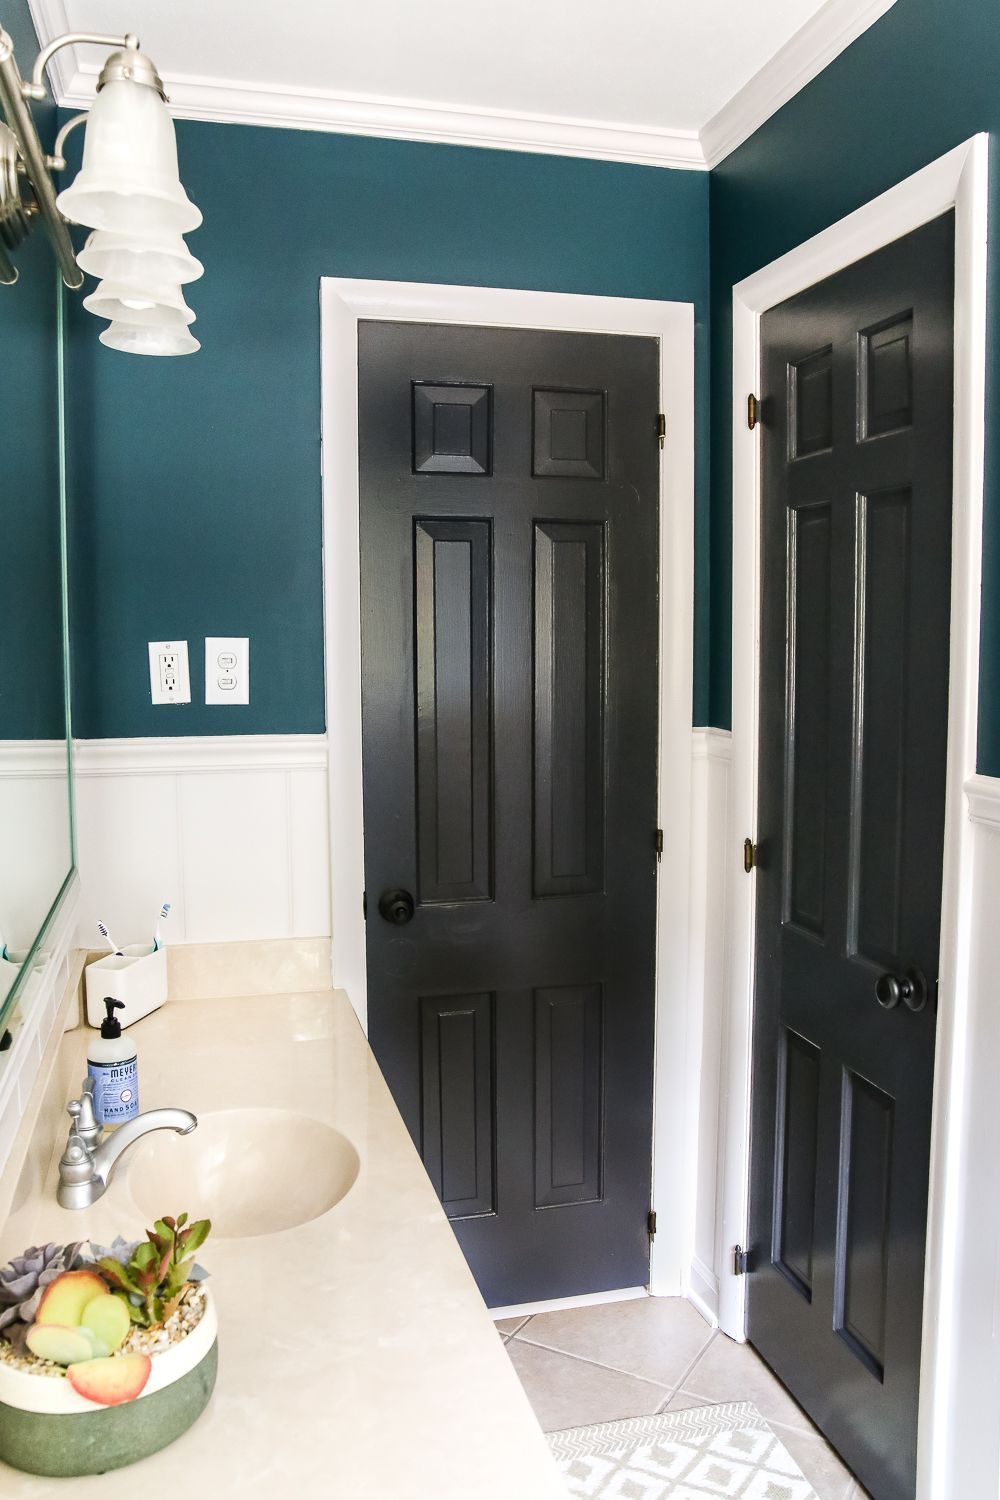 2 waschbecken badezimmer eitelkeiten teal painted bathroom makeover  bathroom decor diy  pinterest